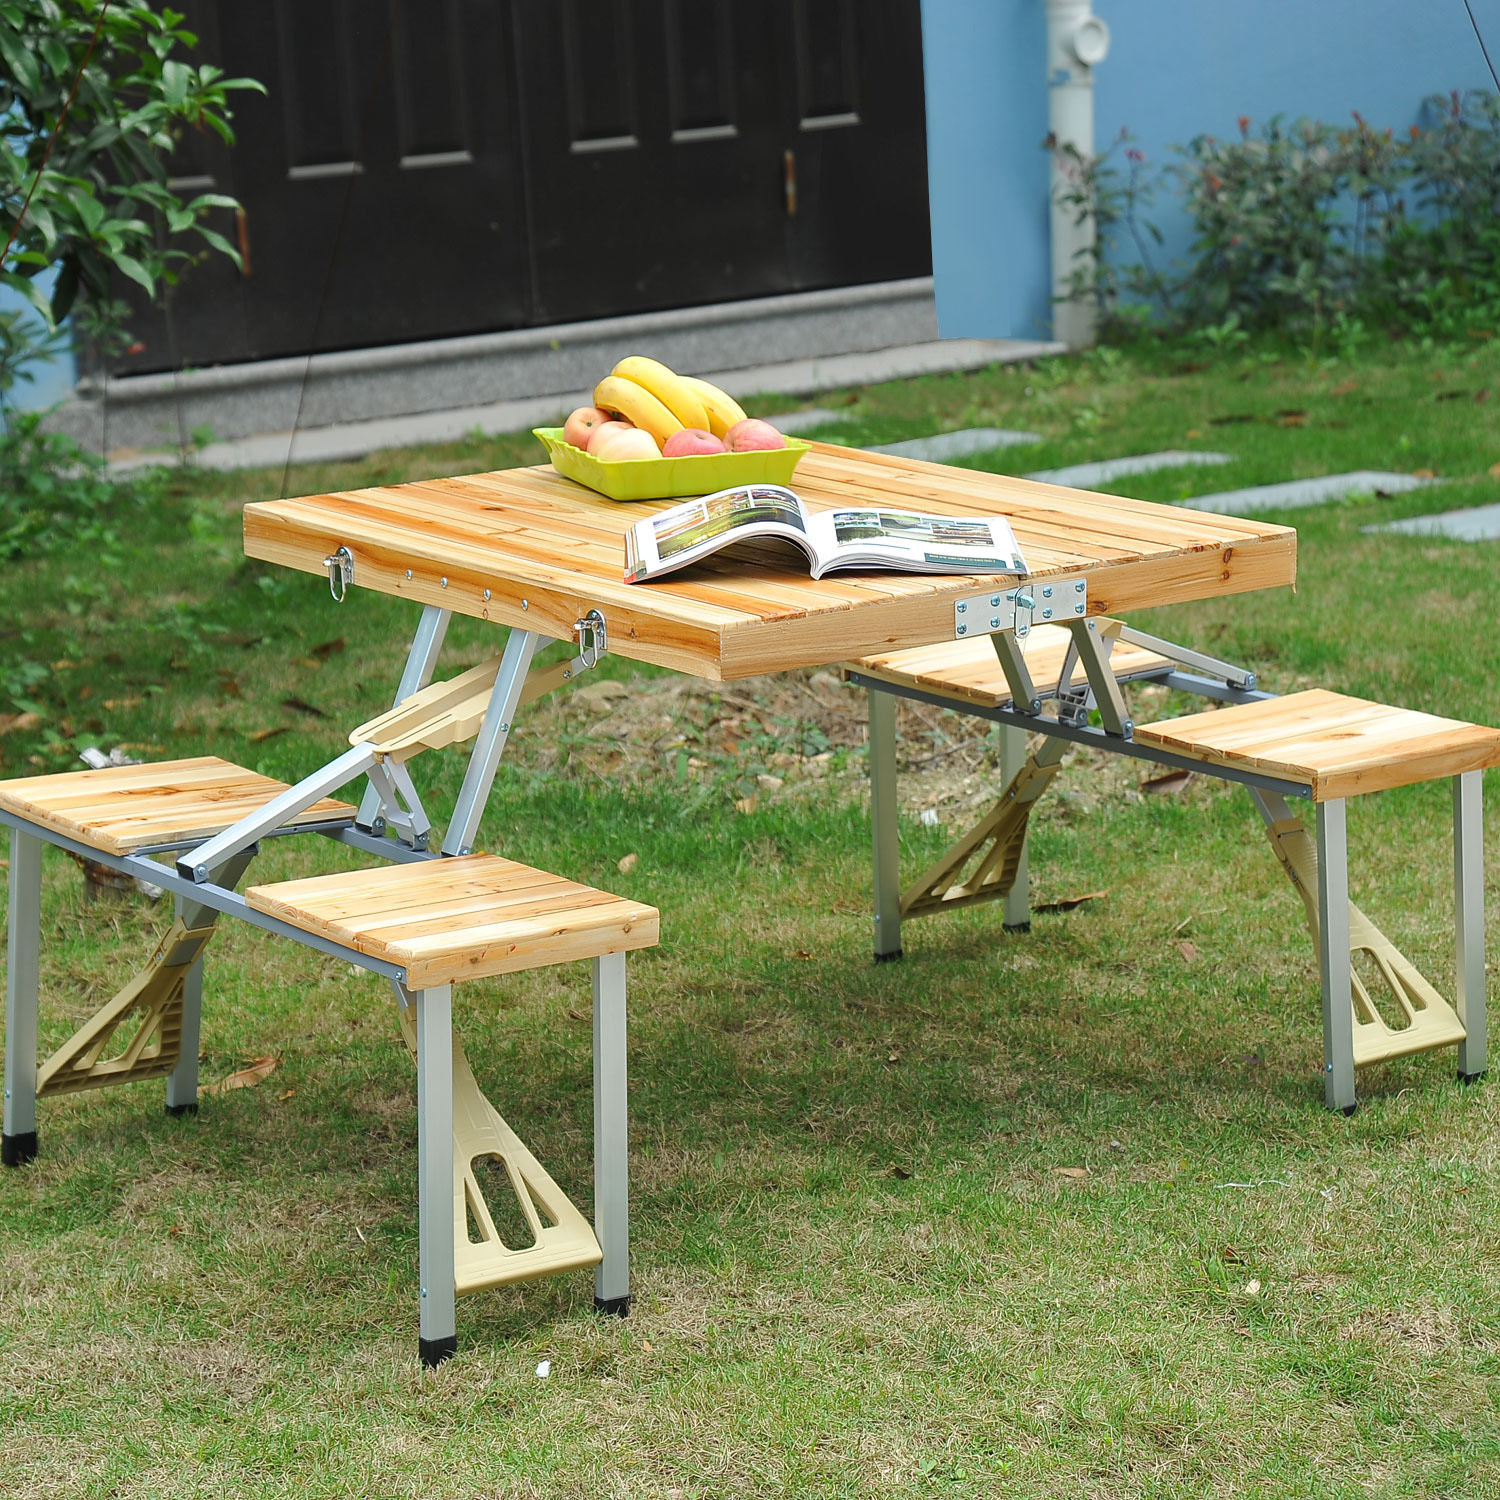 Wooden Picnic Table Bench Seat Outdoor Portable Folding C&ing Aluminum 4 seats : garden table and bench set - pezcame.com